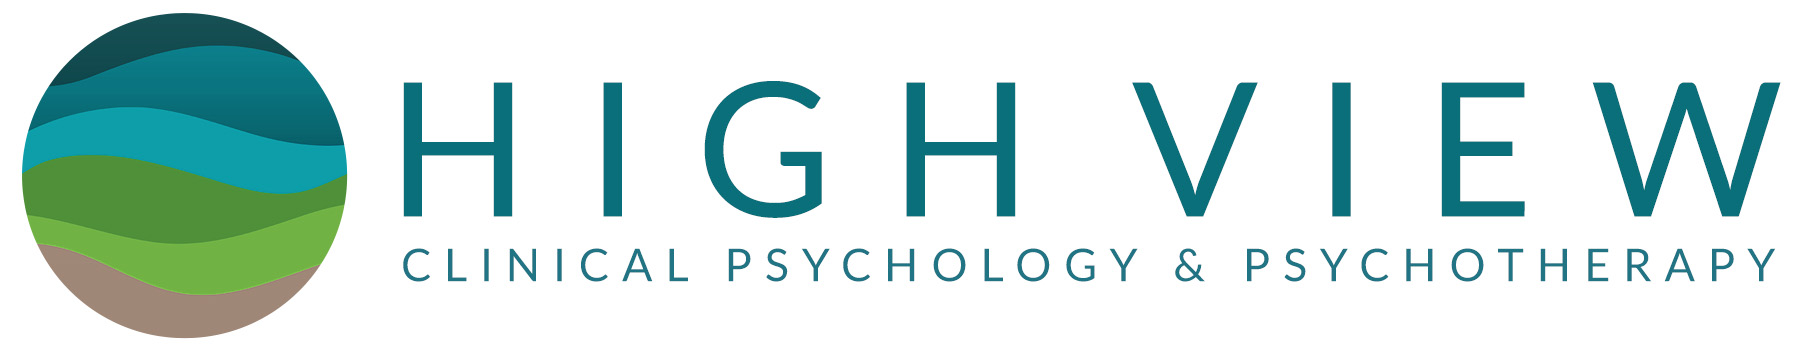 High View Clinical Psychology and Psychotherapy Logo